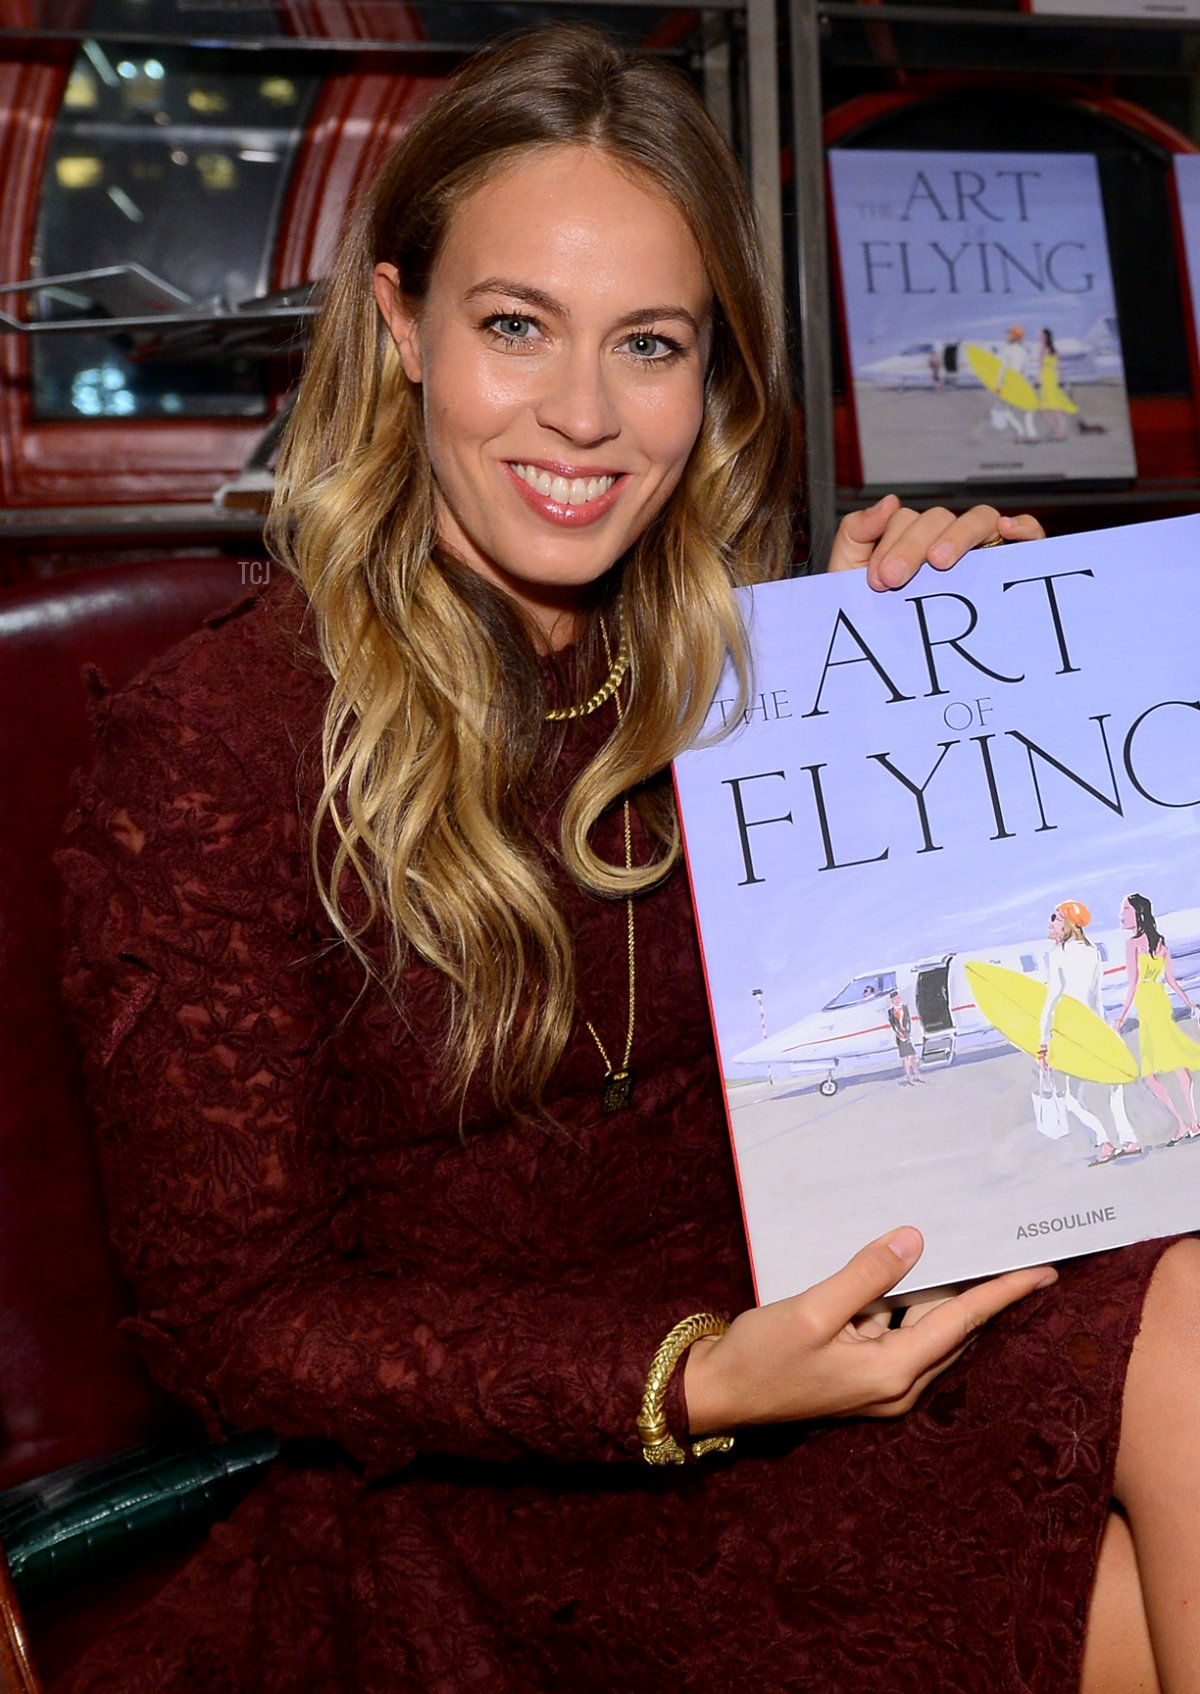 """Nina Flohr attends """"The Art of Flying"""" book launch reception at Assouline in The Plaza Hotel on November 4, 2015 in New York City"""